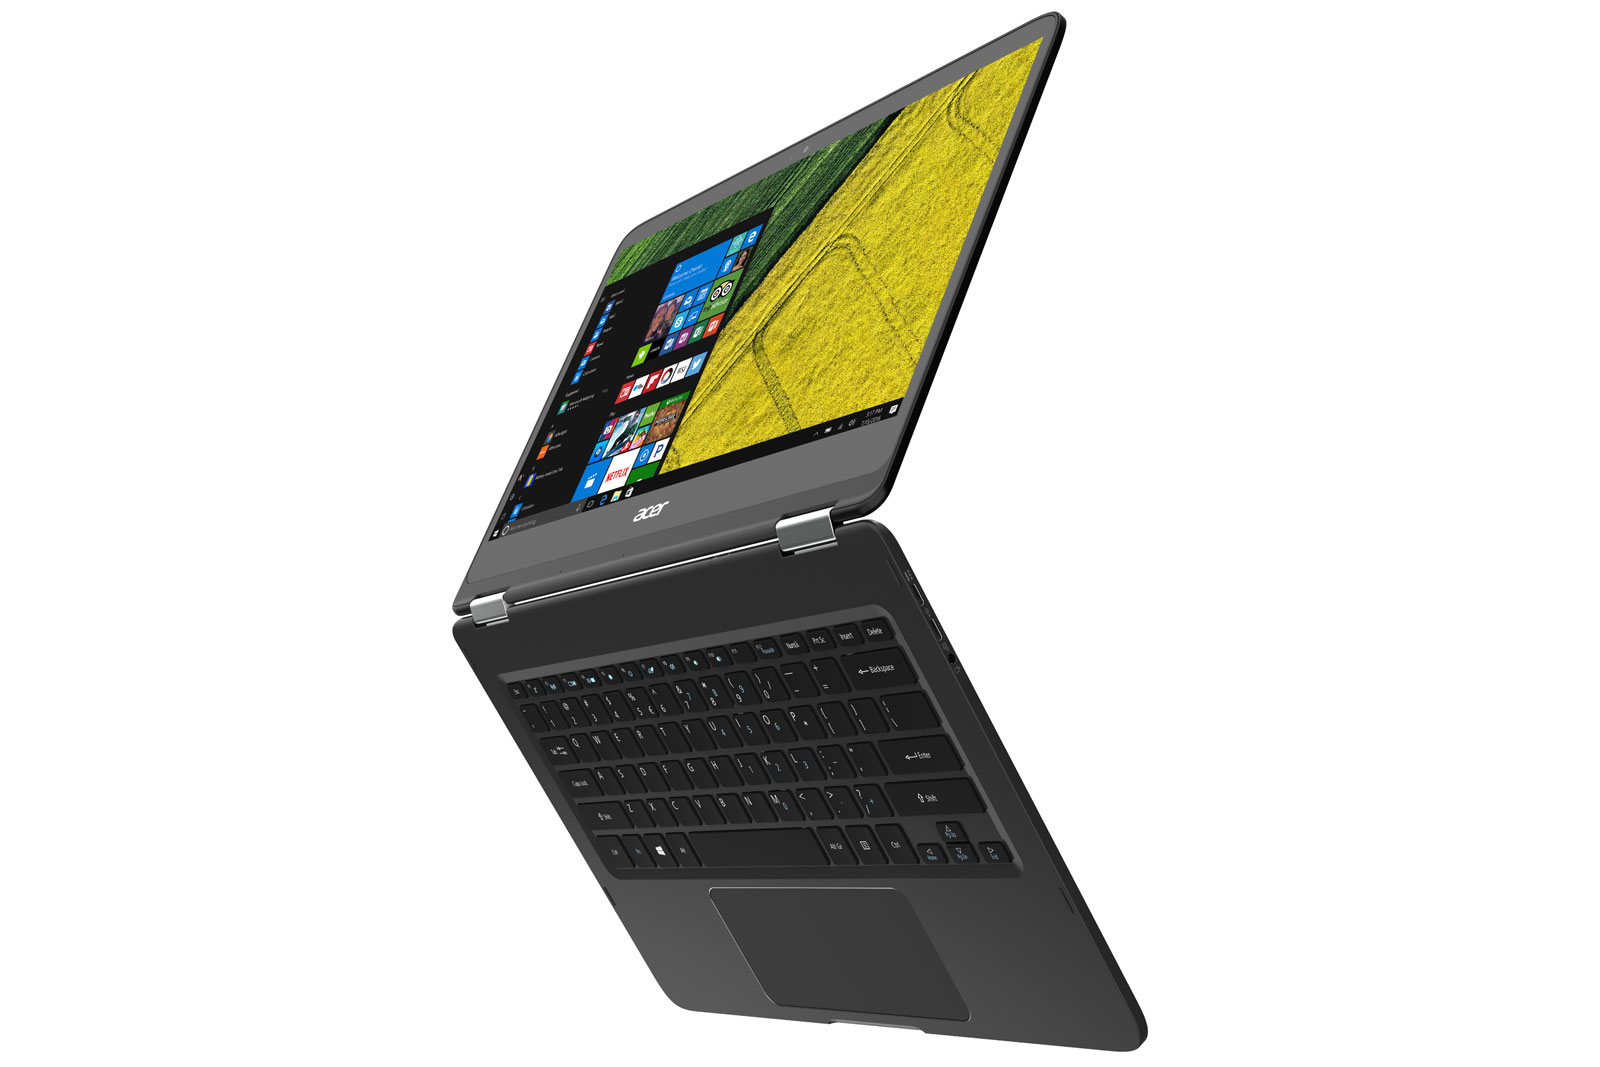 The Acer Spin 7.